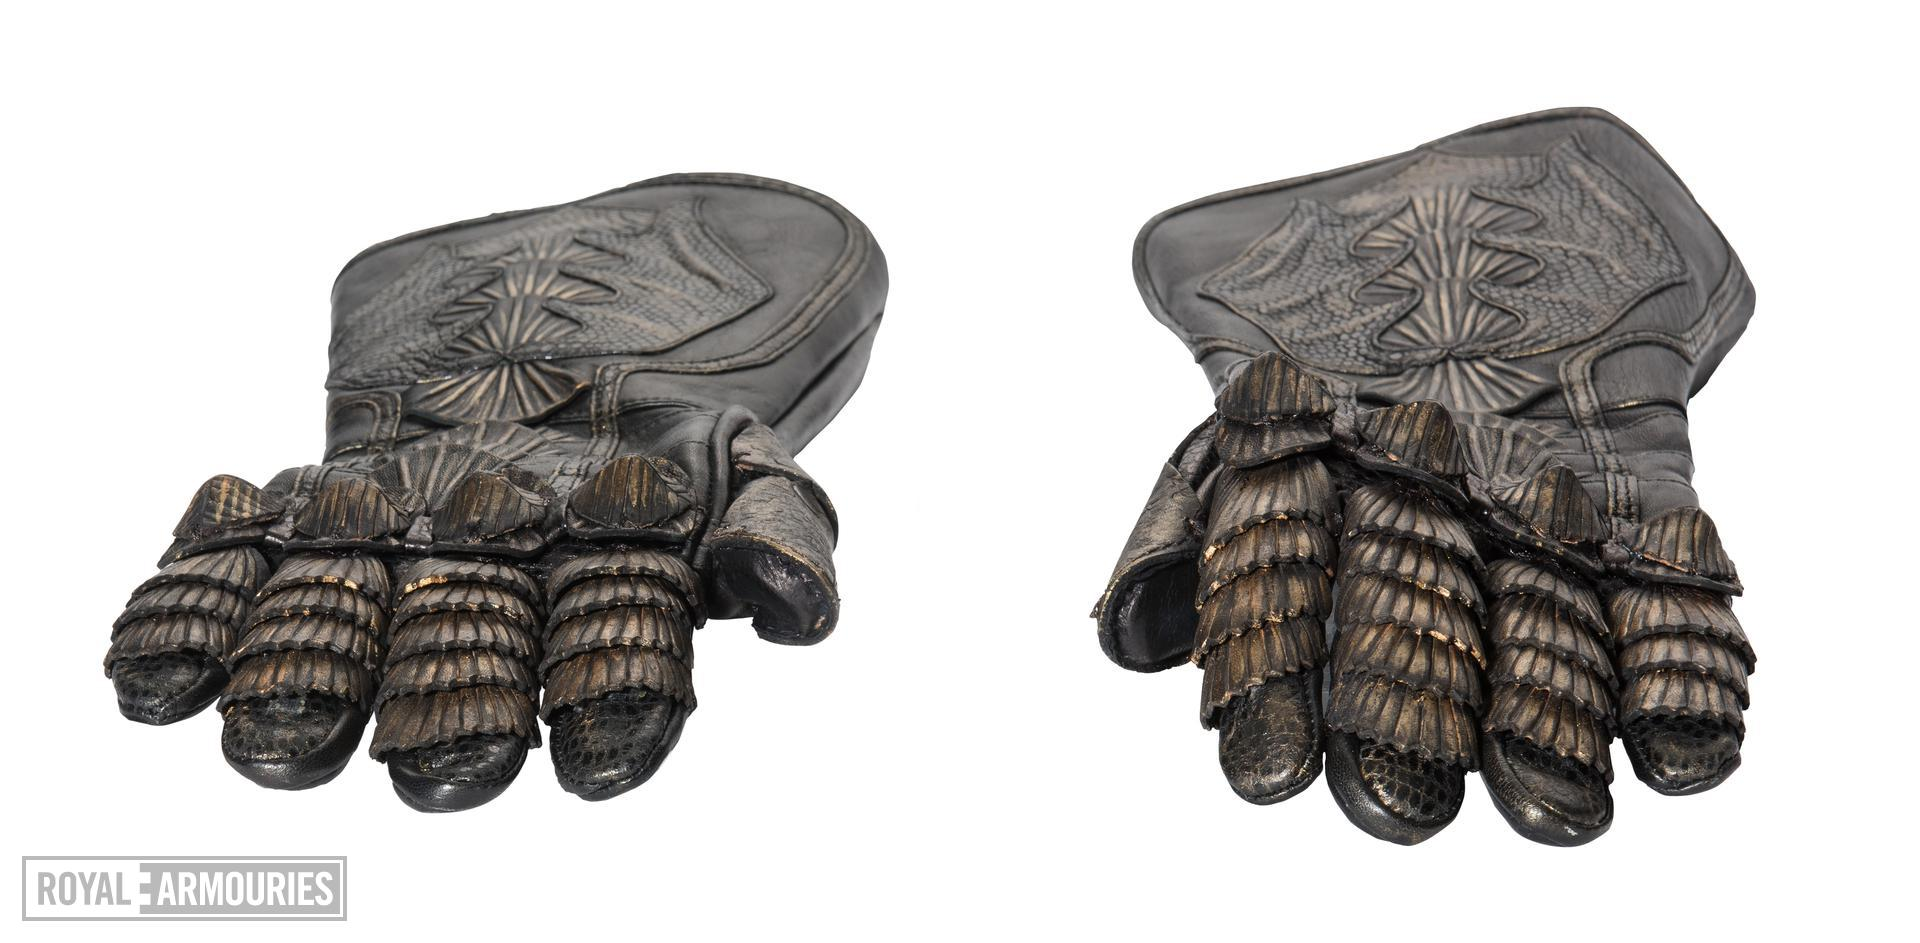 Gloves from The Lord Marshal's Costume. Part of the Lord Marshal's costume from the film the Chronicles of Riddick. Ornately decorated and highly detailed. Bronze and black in appearance but made from leather.